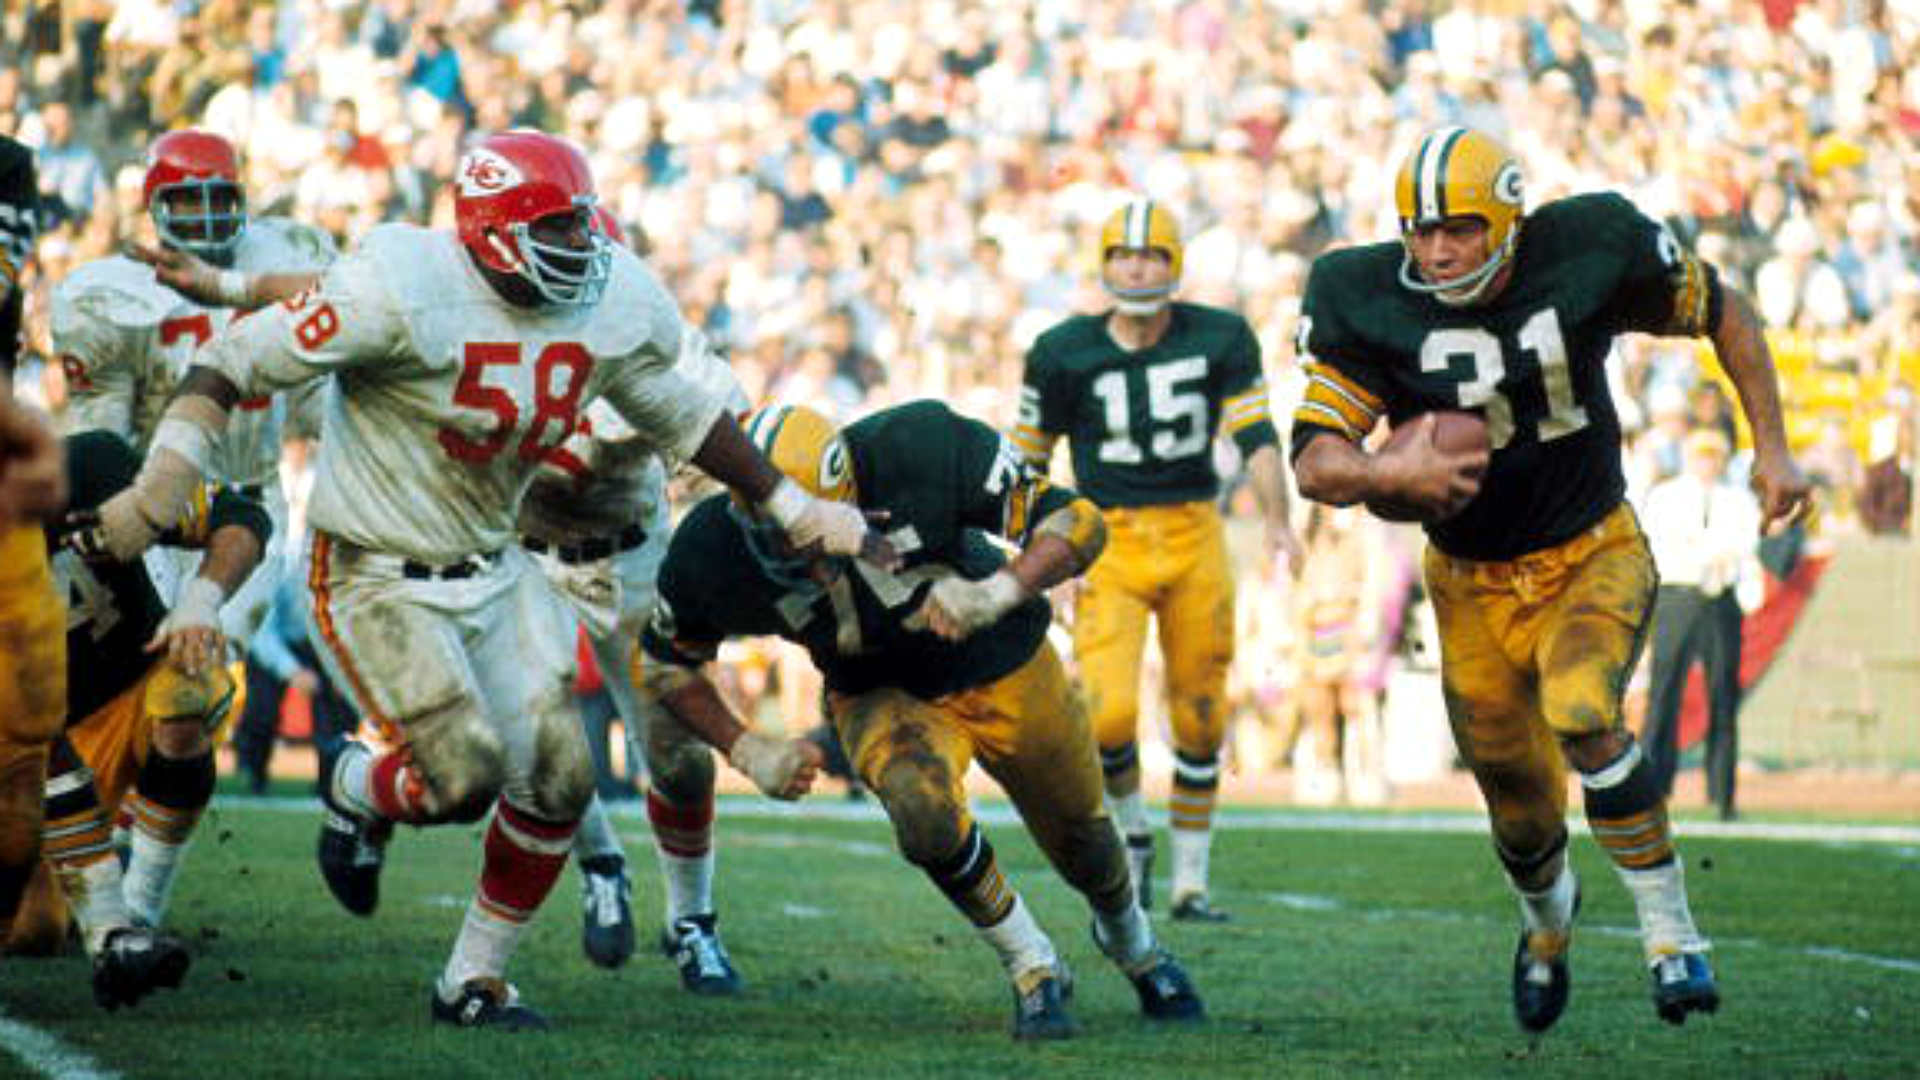 SuperBowlI-Chiefs-Packers-011216-USNews-Getty-FTR